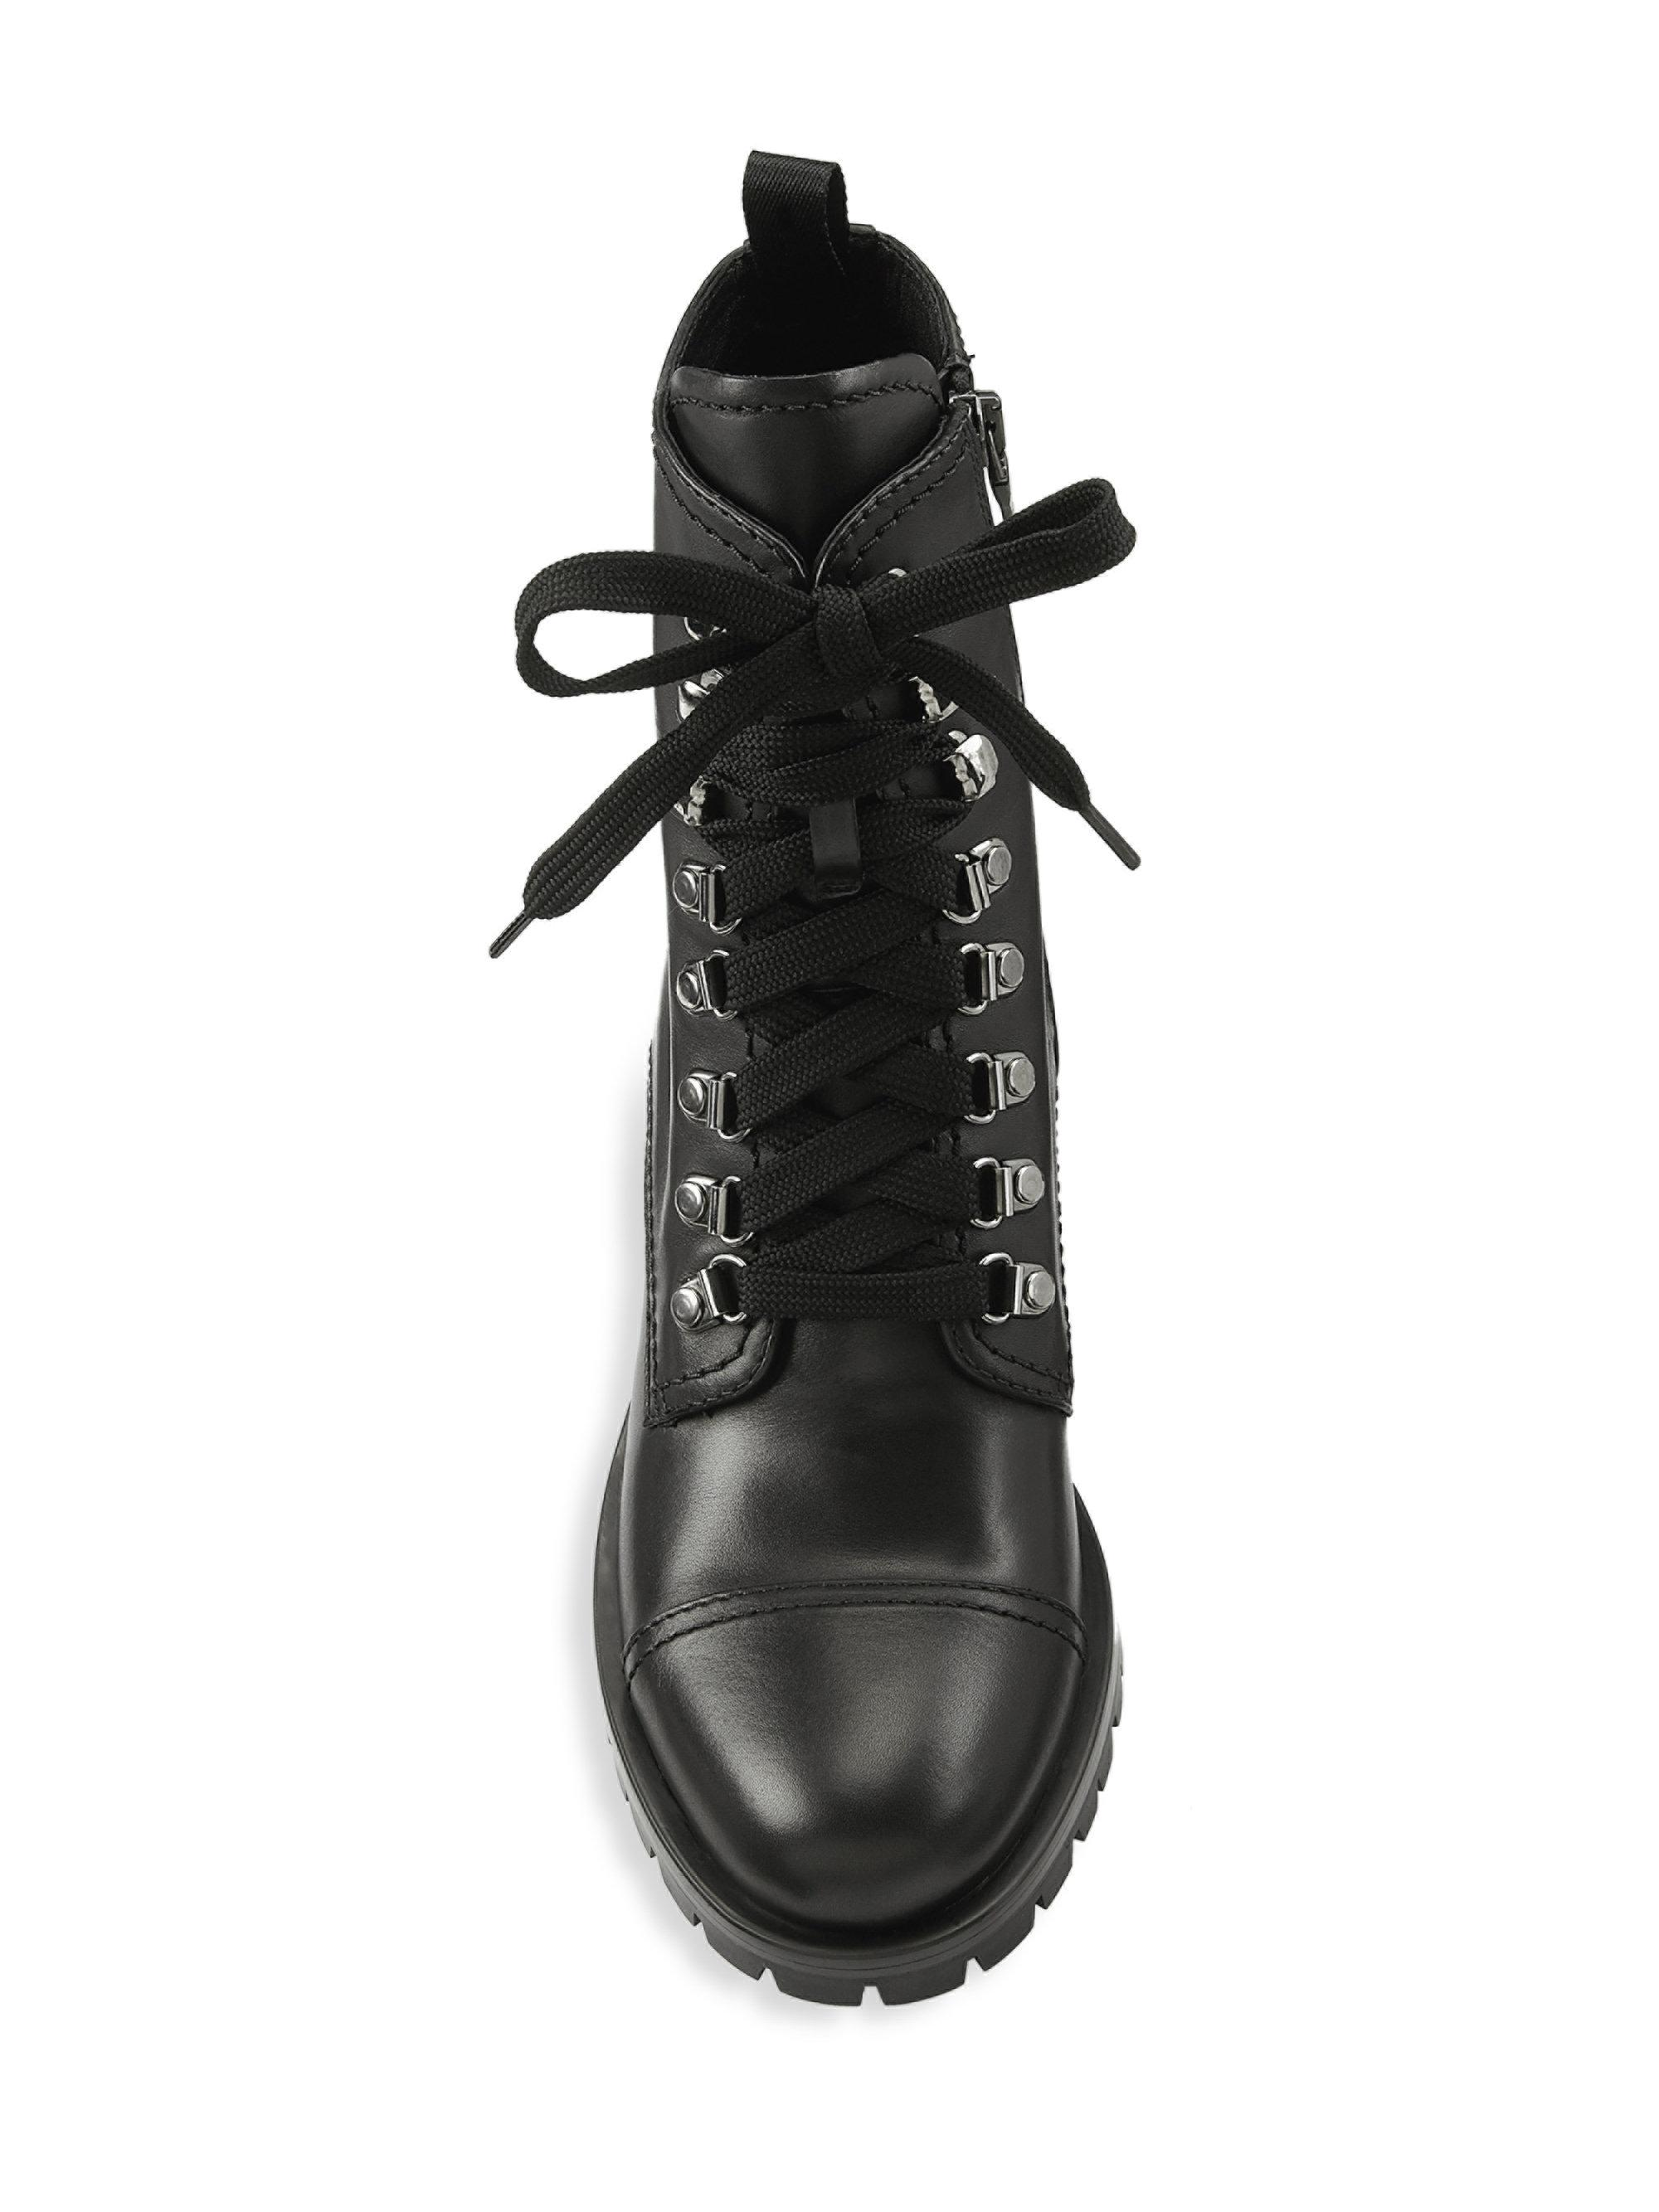 565314f3 Prada Black Soft Leather Combat Boots